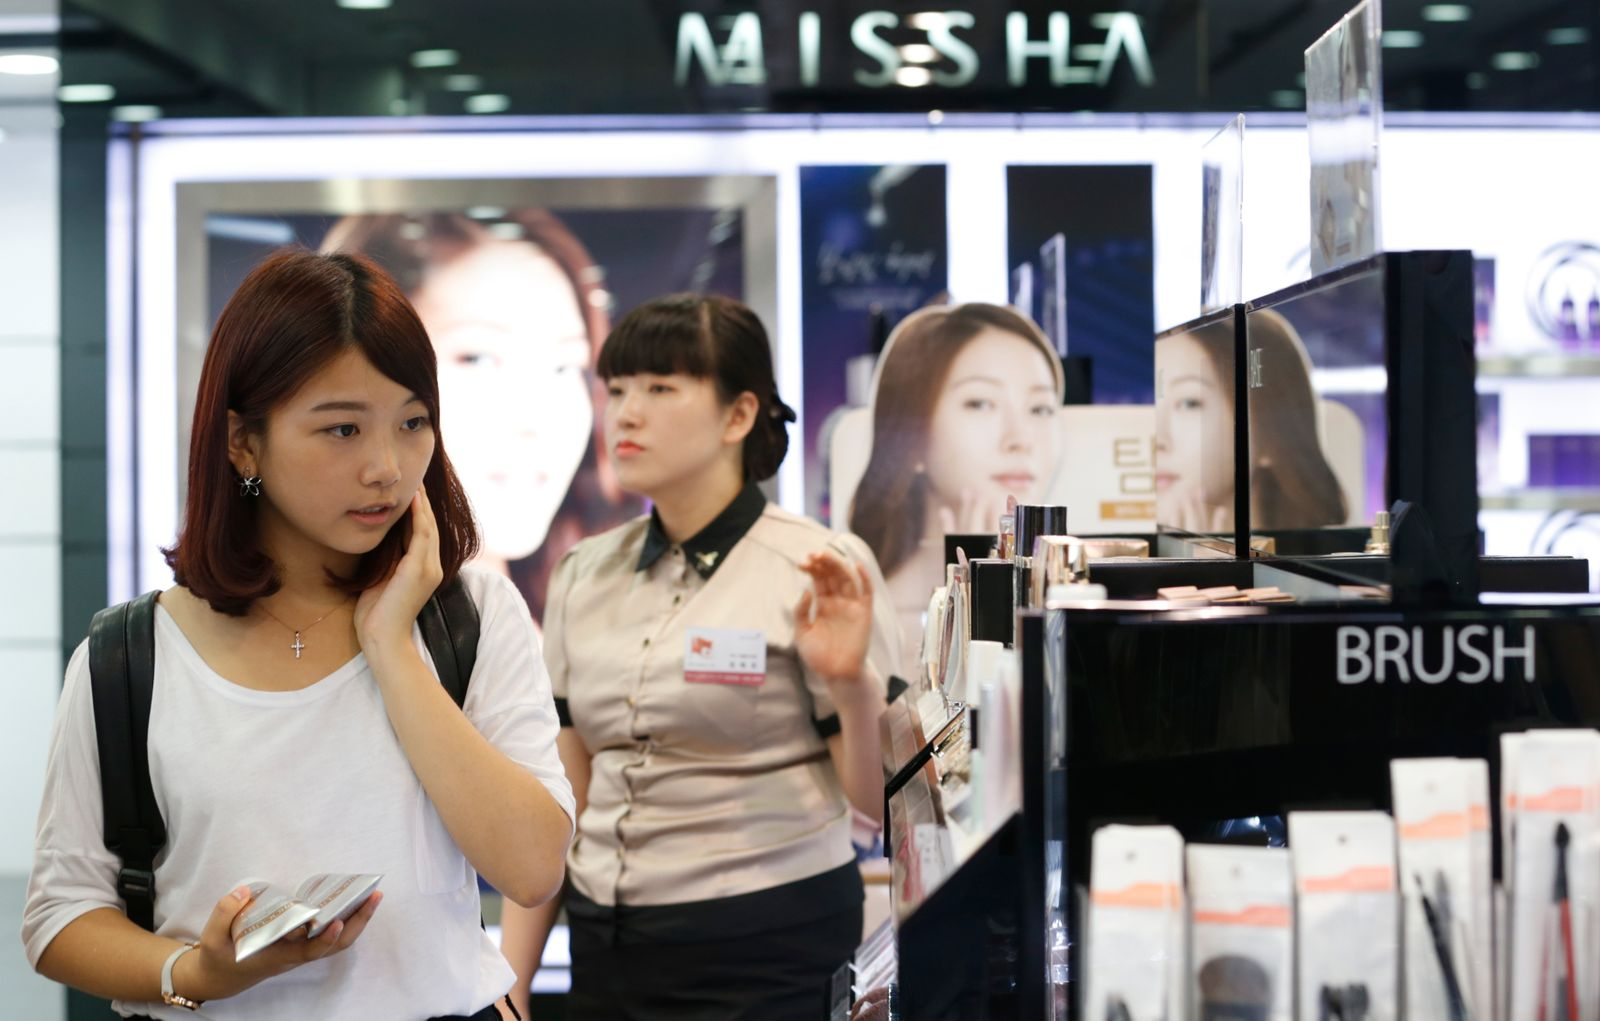 A tourist shops at a Missha store in central Seoul